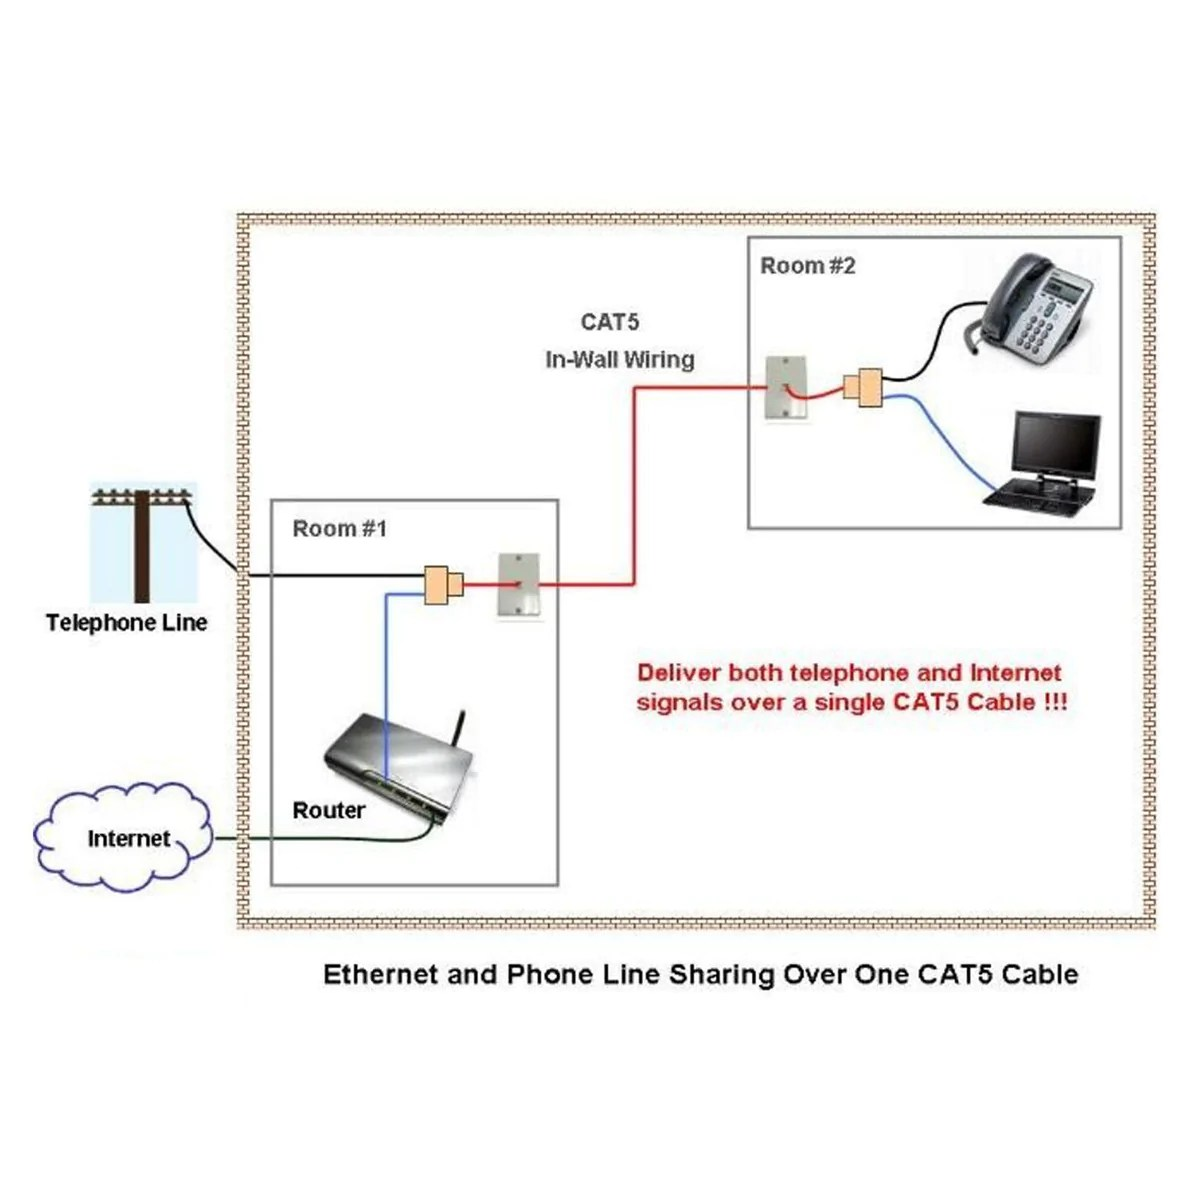 medium resolution of  cat 5 phone wire diagram rj45 rj11 splitter cable sharing kit for ethernet and phone linesrj45 rj11 splitter cable sharing kit